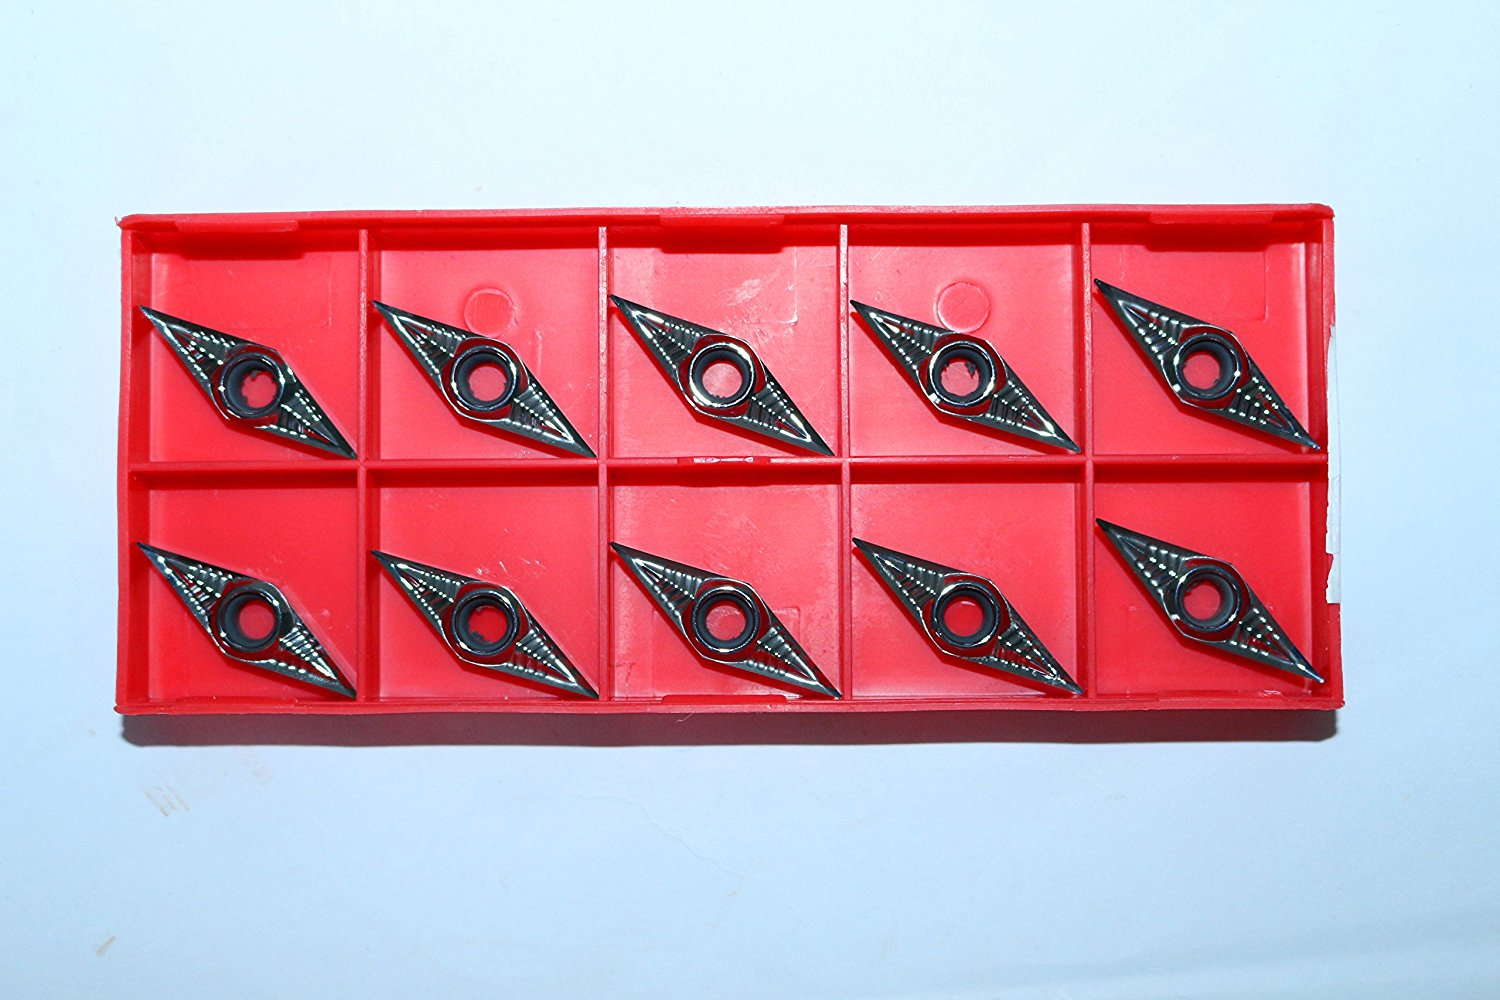 10pcs Carbide Inserts VCGT110304 for Cutting Aluminum /& Copper Indexable VCGT221